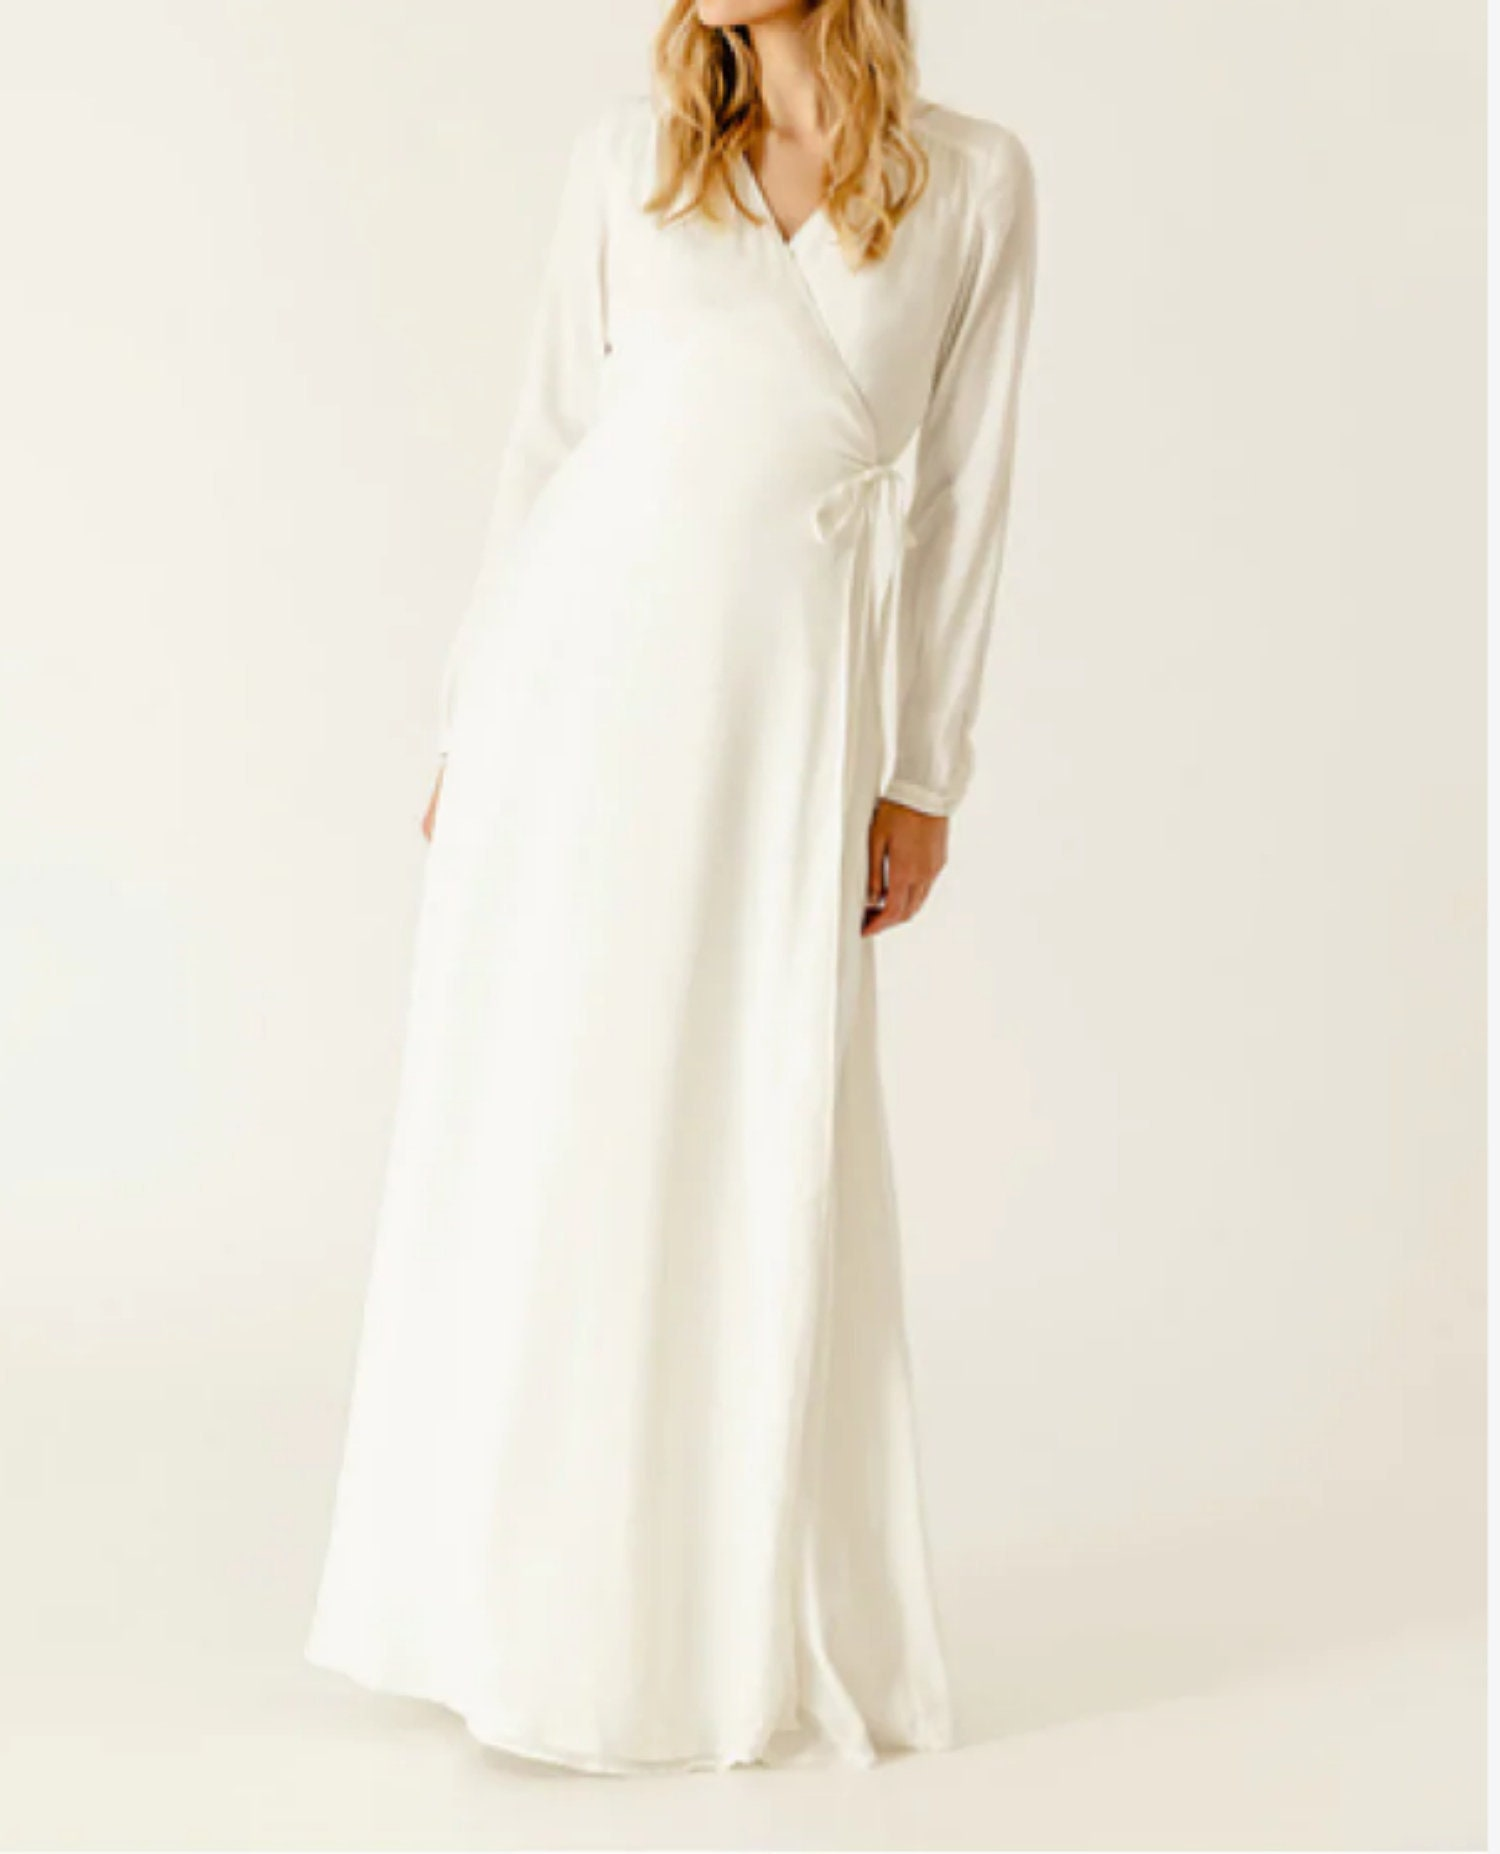 ac18f0ae530 Modest White Dresses For Graduation